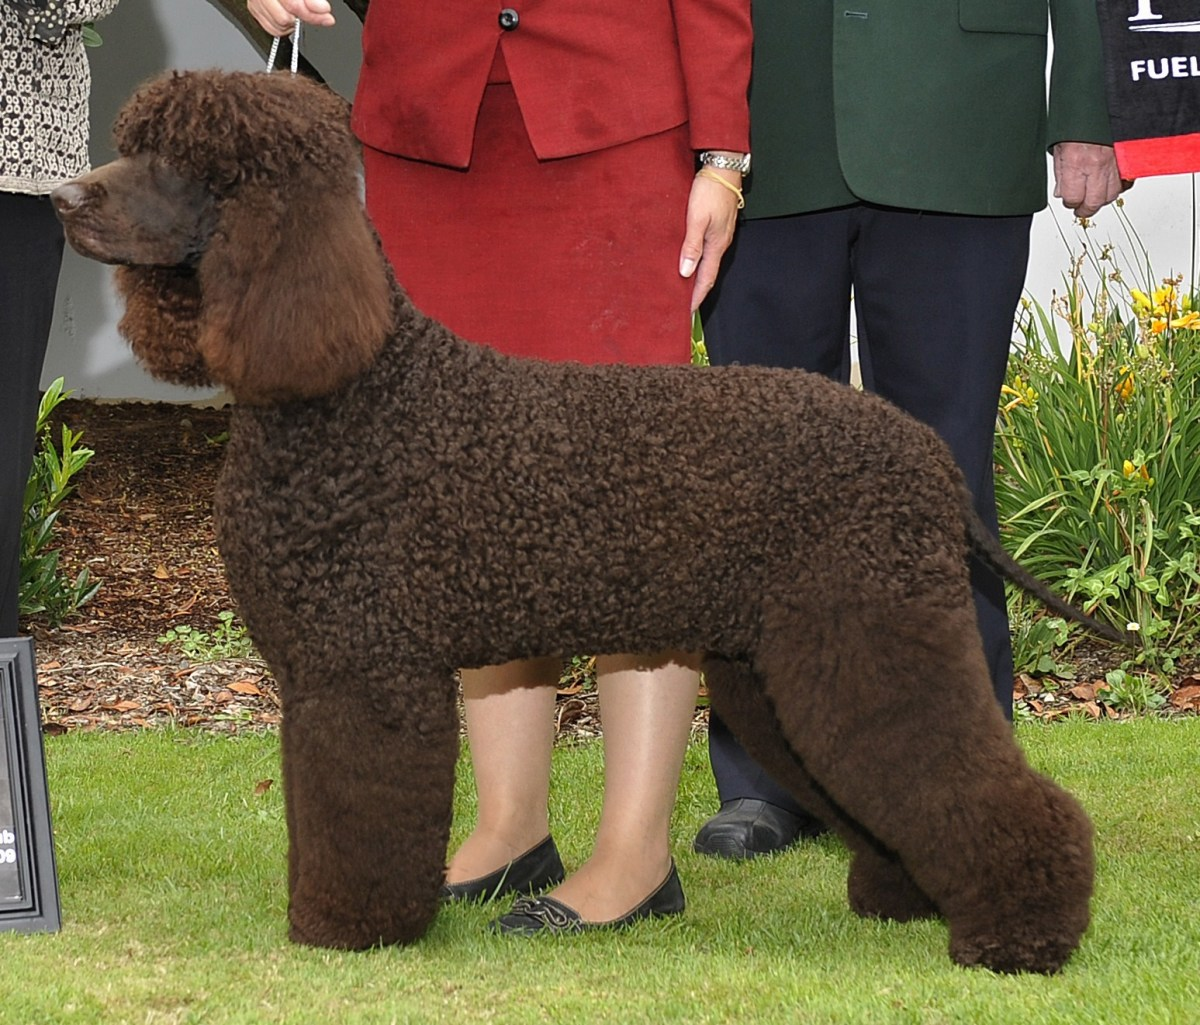 The rare Irish Water Spaniel is also known as the Shannon Spaniel, and is one of the largest and oldest of the spaniel breeds.